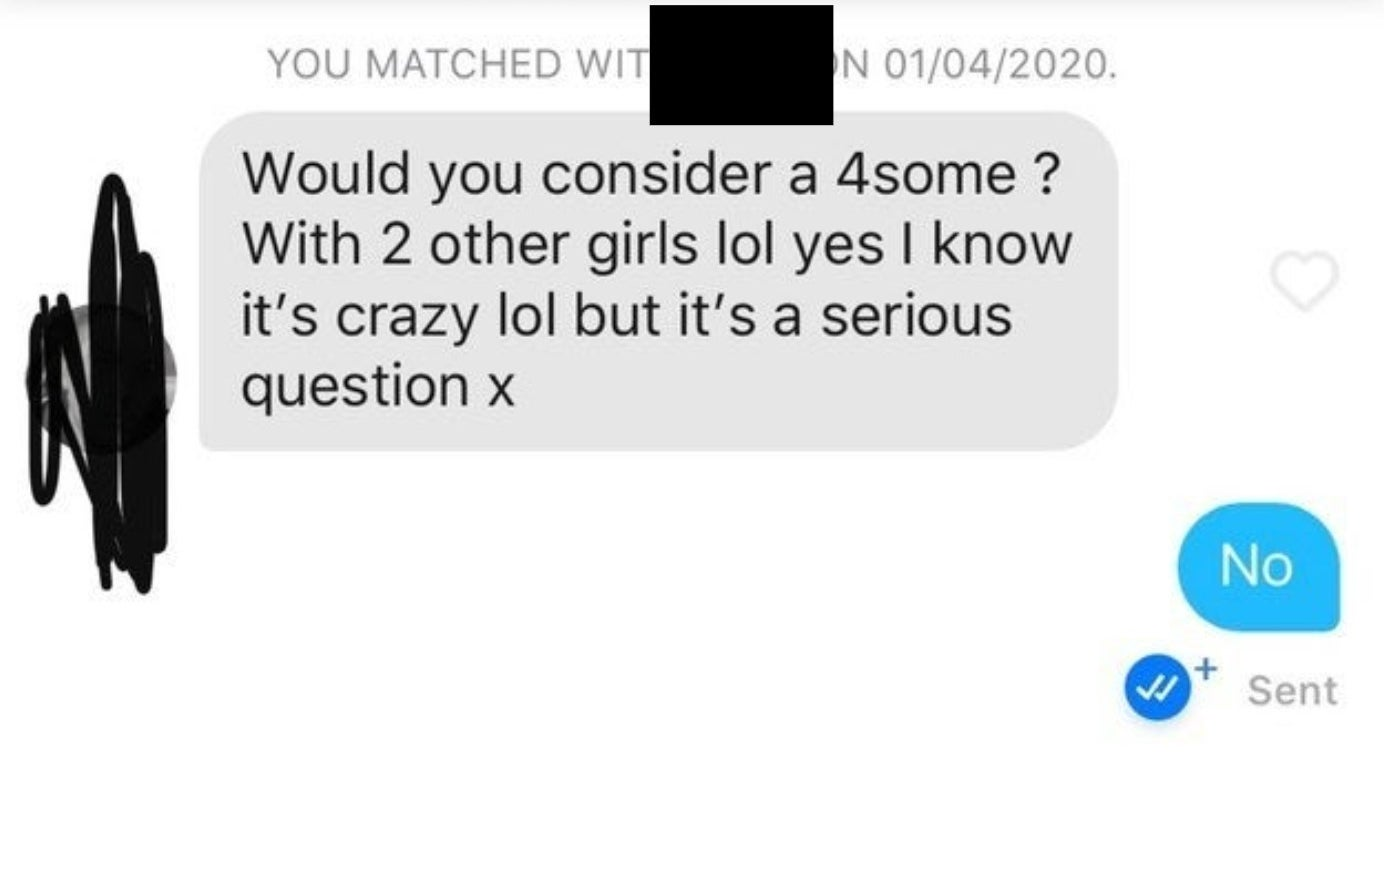 An intro message asking the other person to have a foursome with them and two other girls